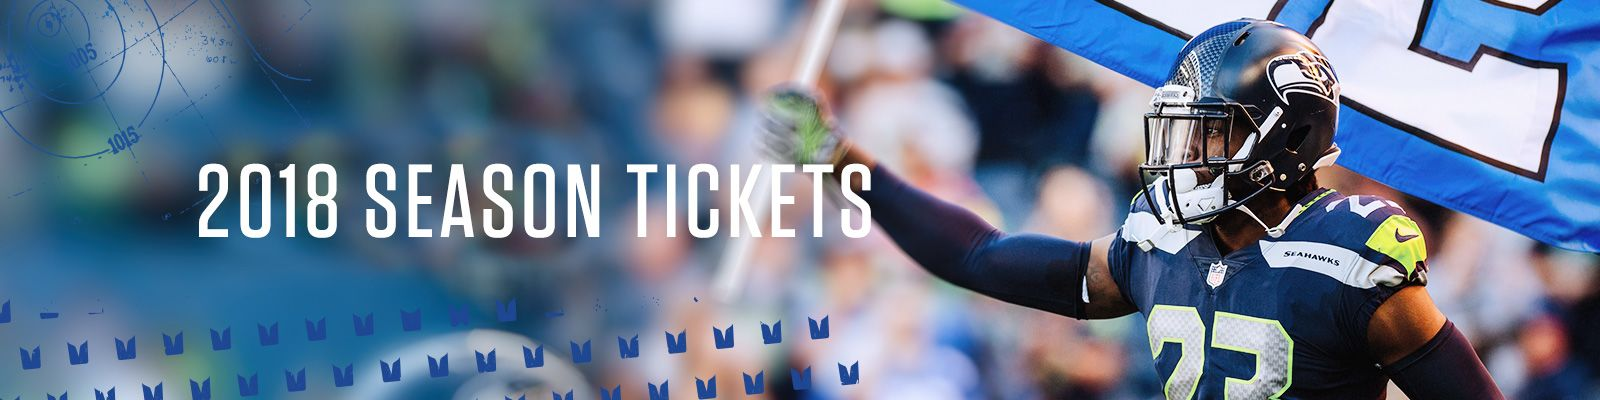 Web-Header-SEASON-TICKETS